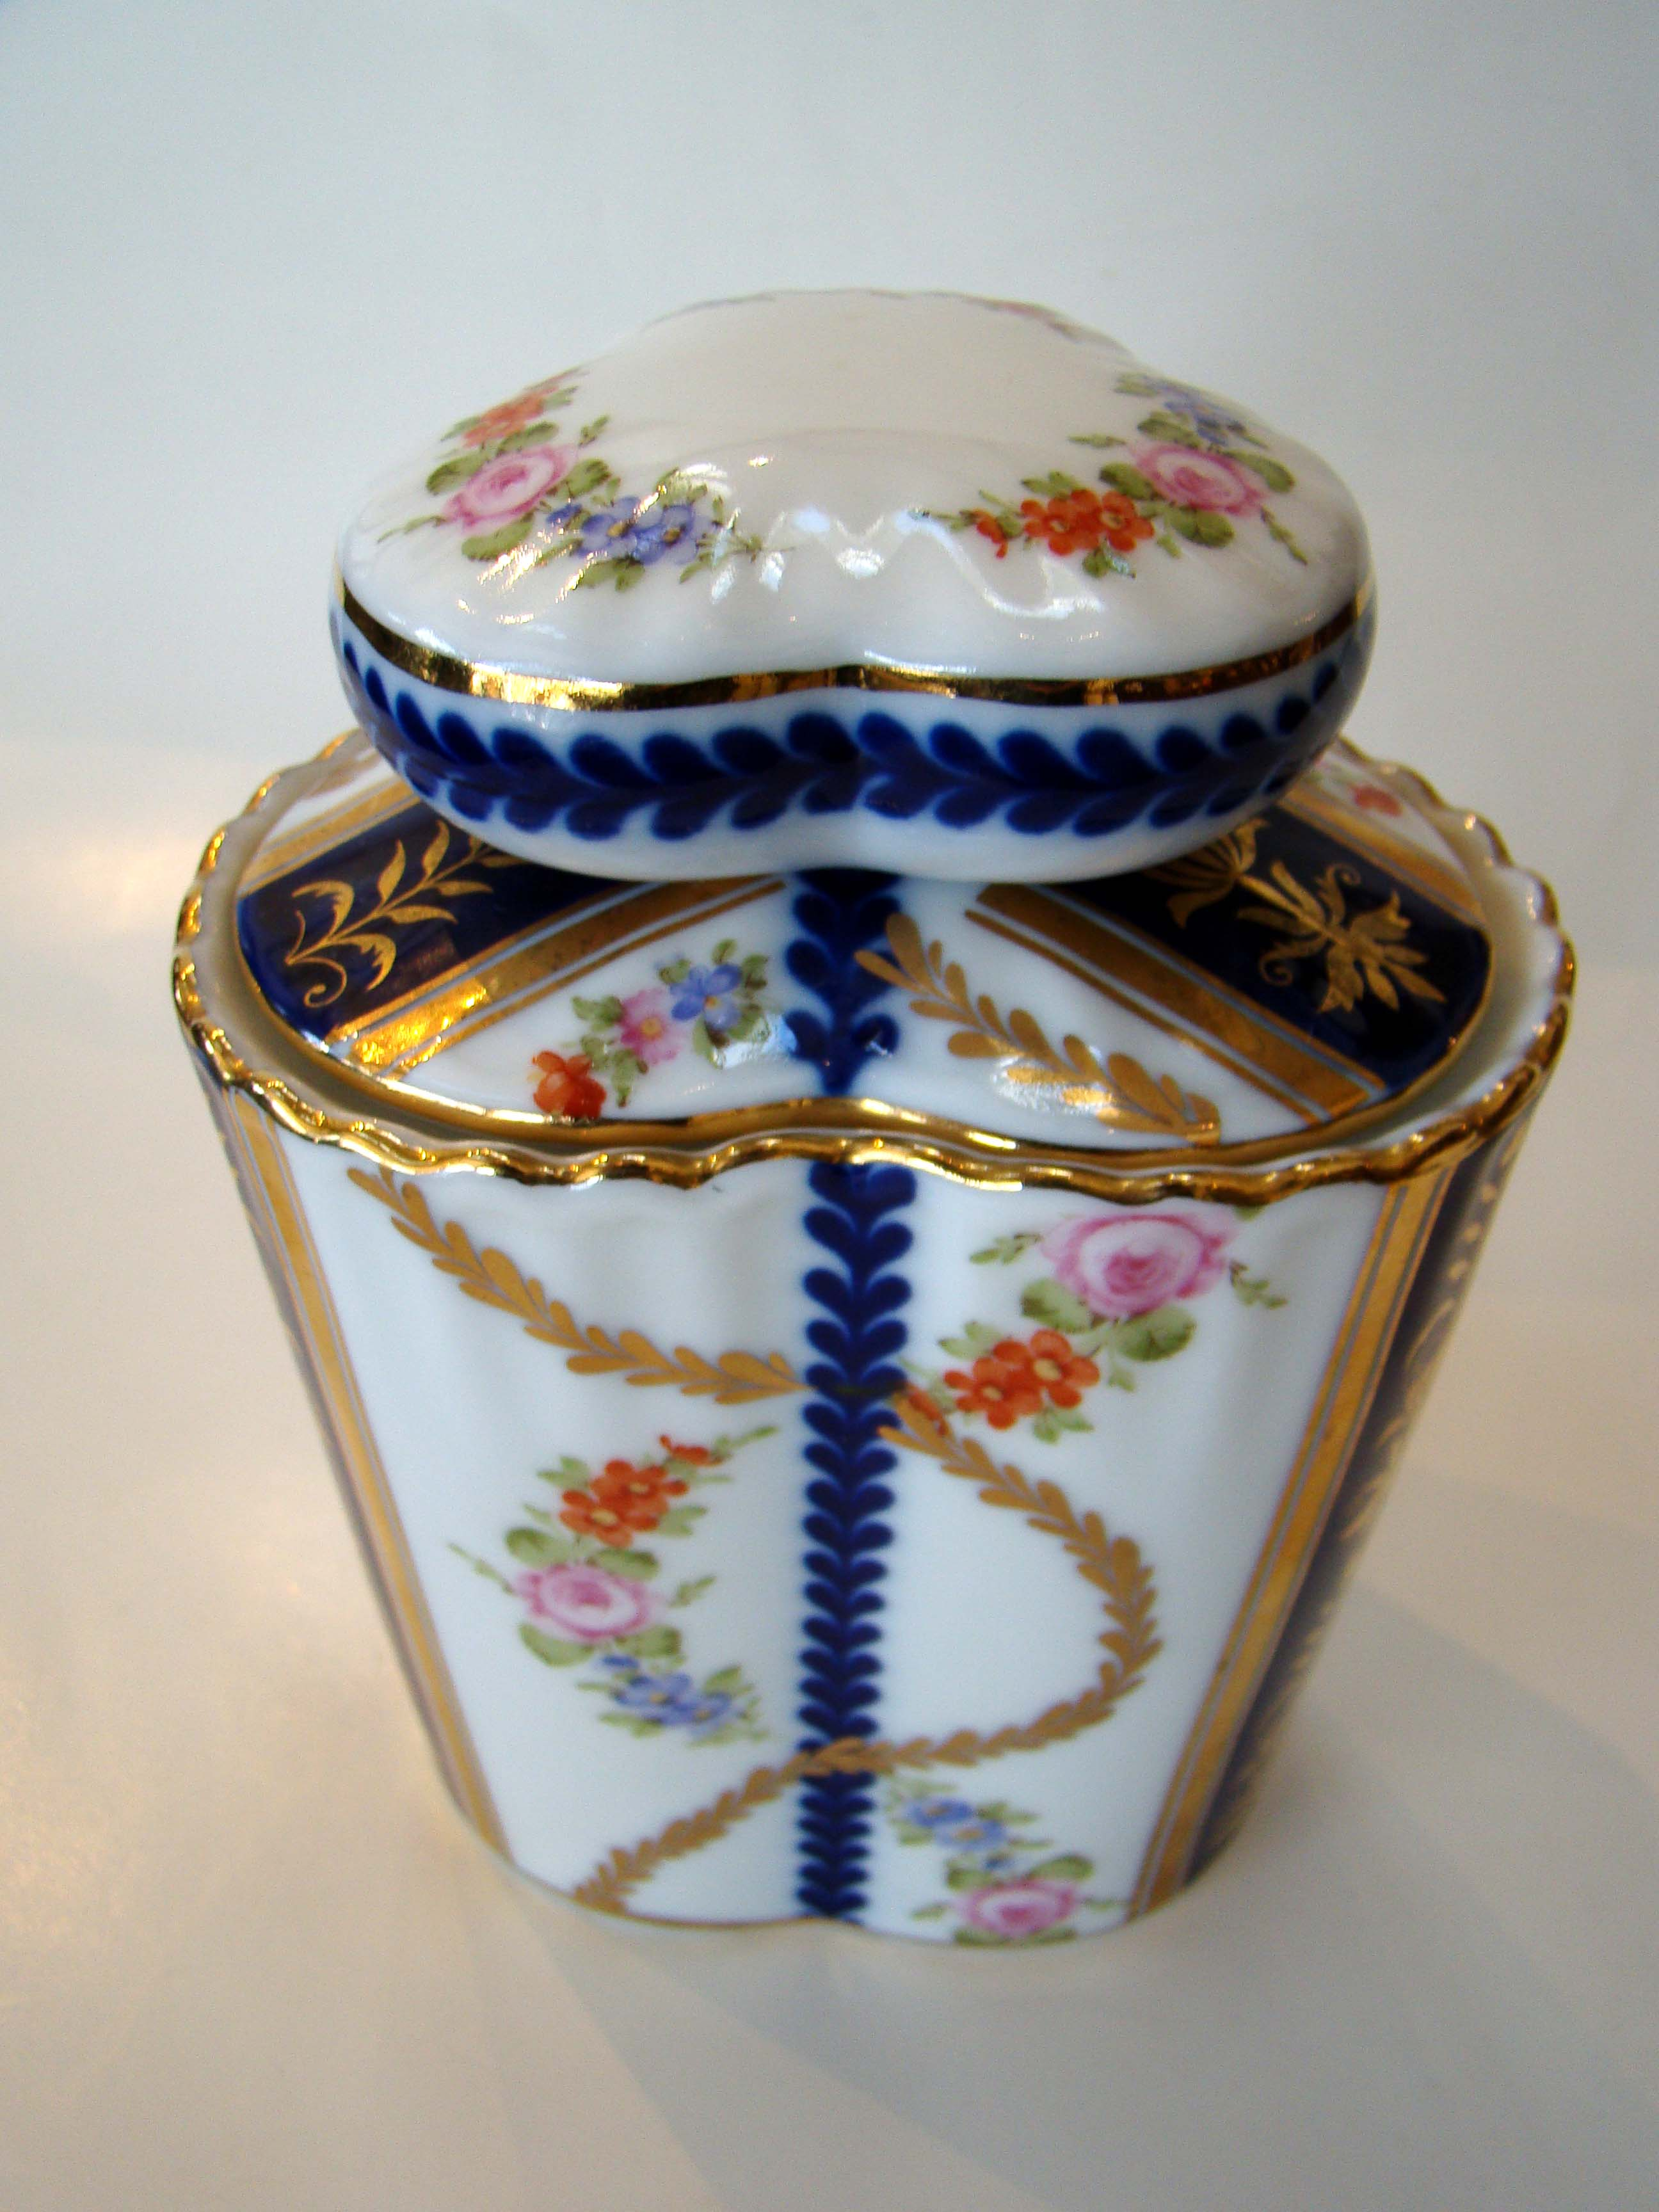 click to view larger image of A beautiful English Staffordshire covered jar circa 1900-1920